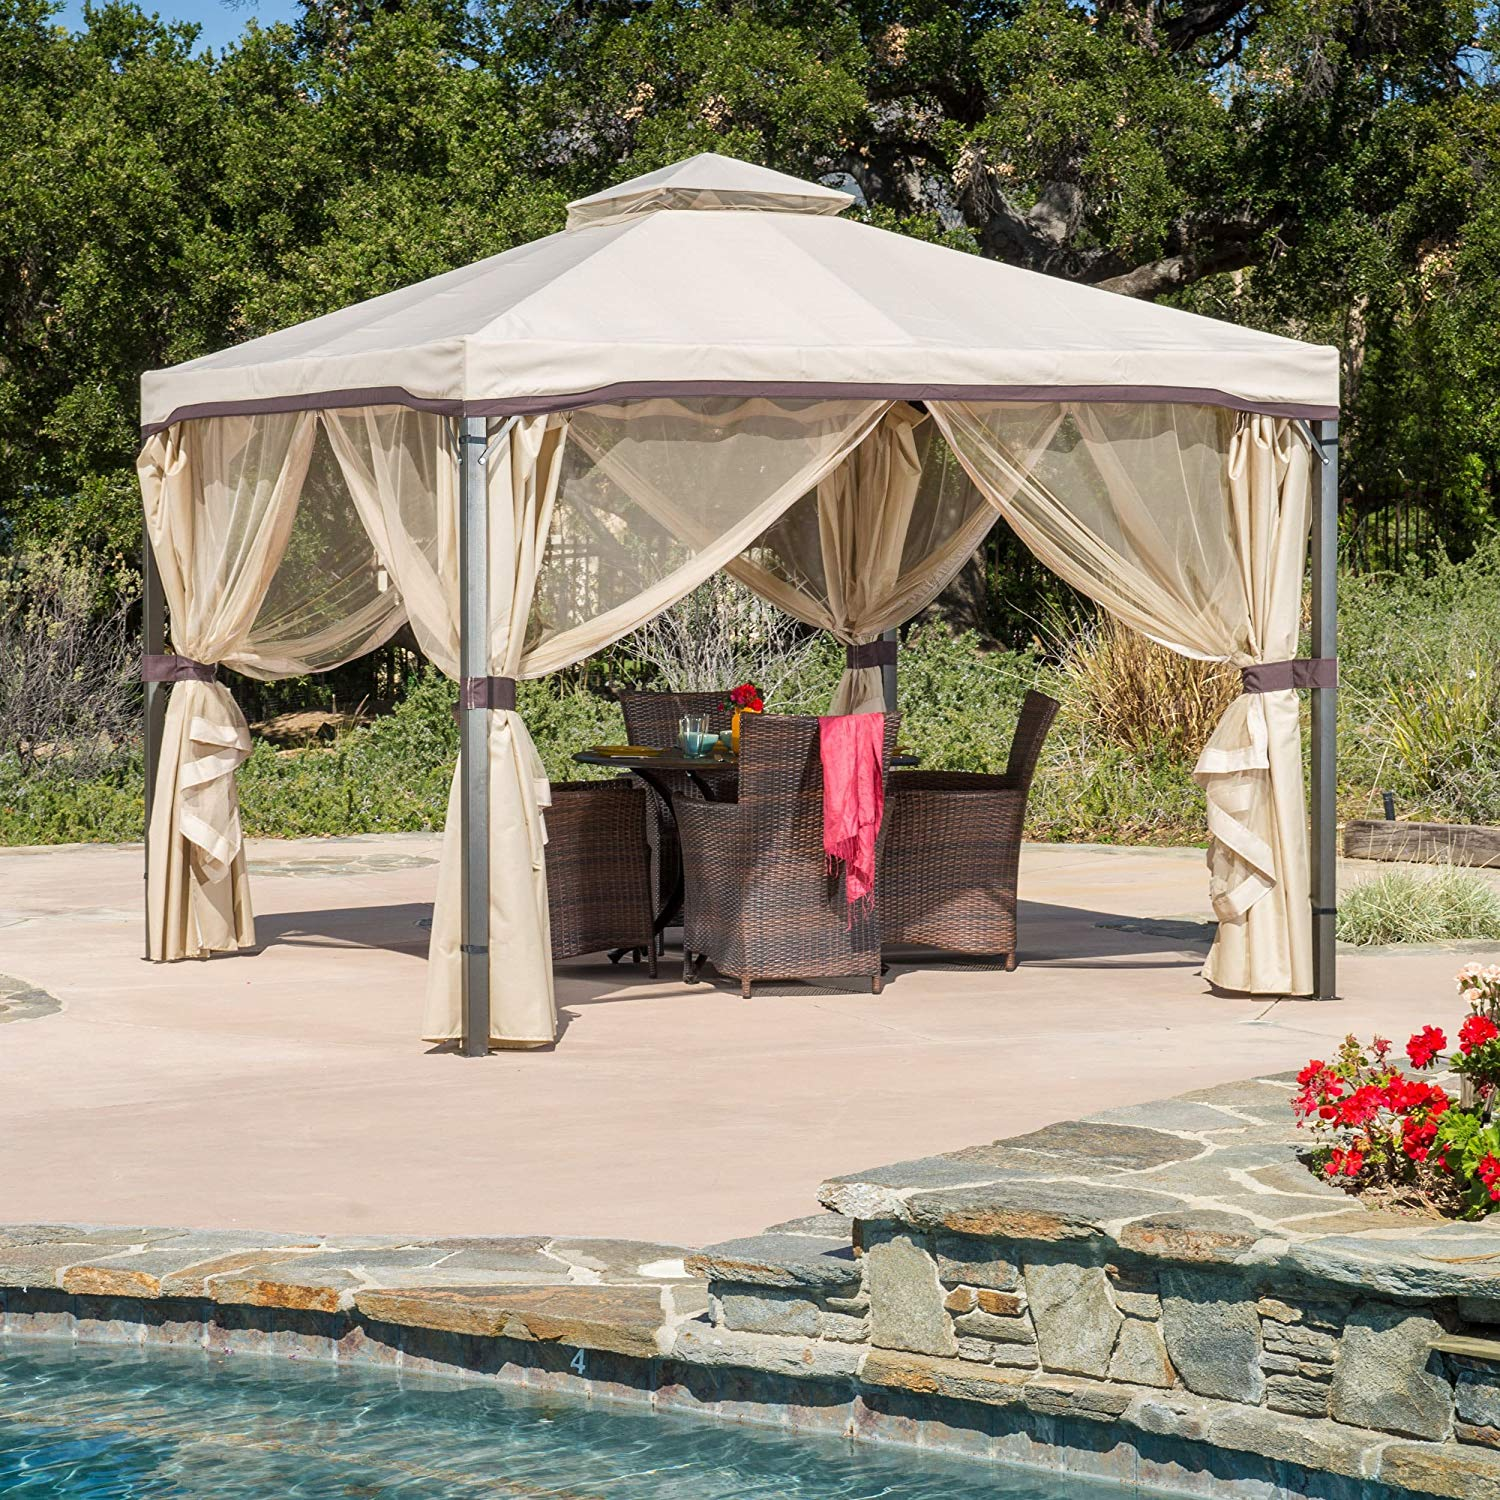 Skyline Fabric Gazebo, UV-Resistant Polyester Roof, Adjustable Side Mosquito Netting, Made of Polyester and Steel, Solid and Durable, Adjustable Netting to Enclose the Structure, Multiple Colors